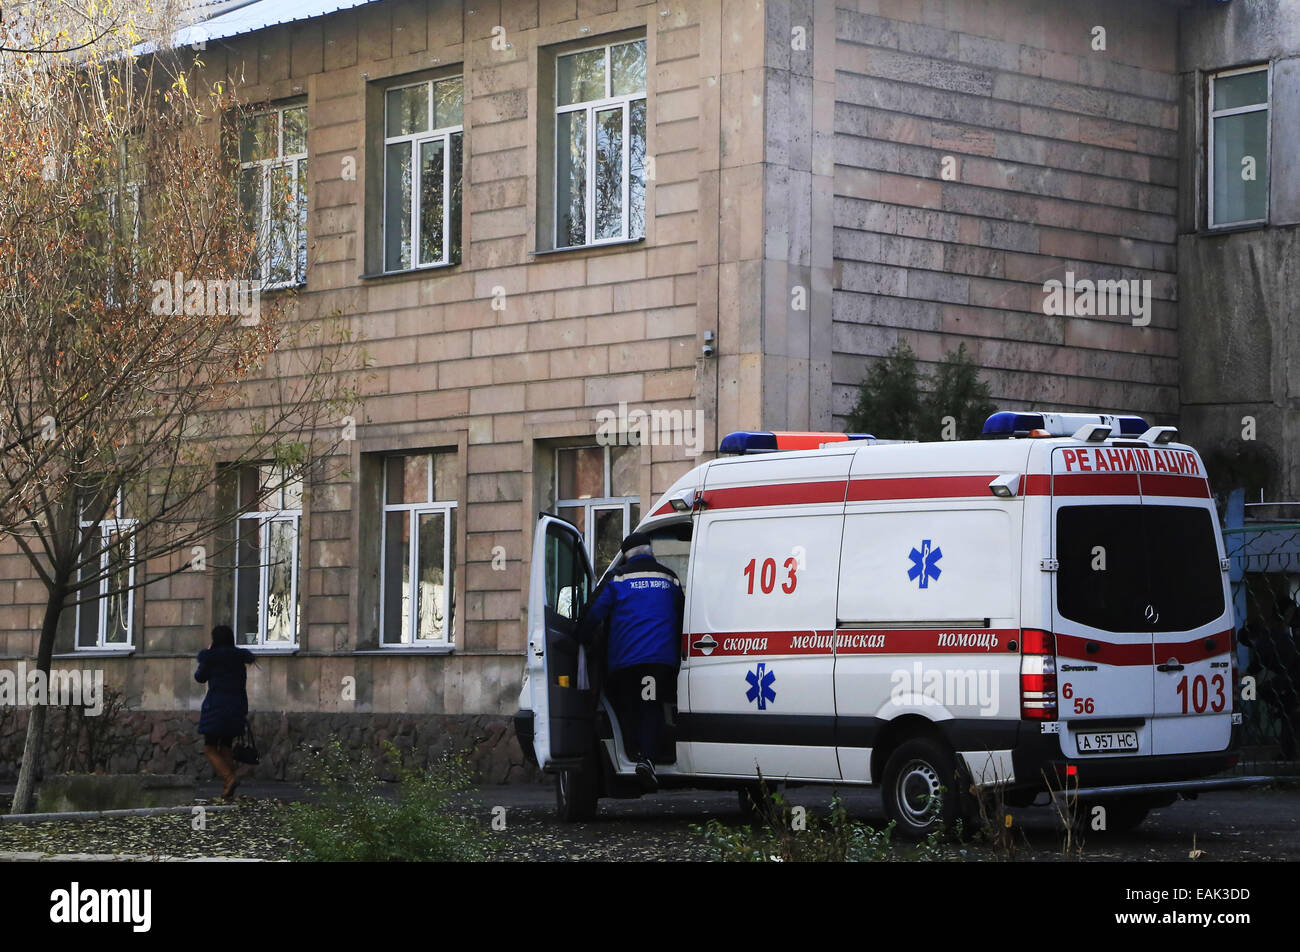 ALMATY, KAZAKHSTAN. NOVEMBER 17, 2014. An ambulance outside Fashion and Design School in the city of Almaty. An - Stock Image